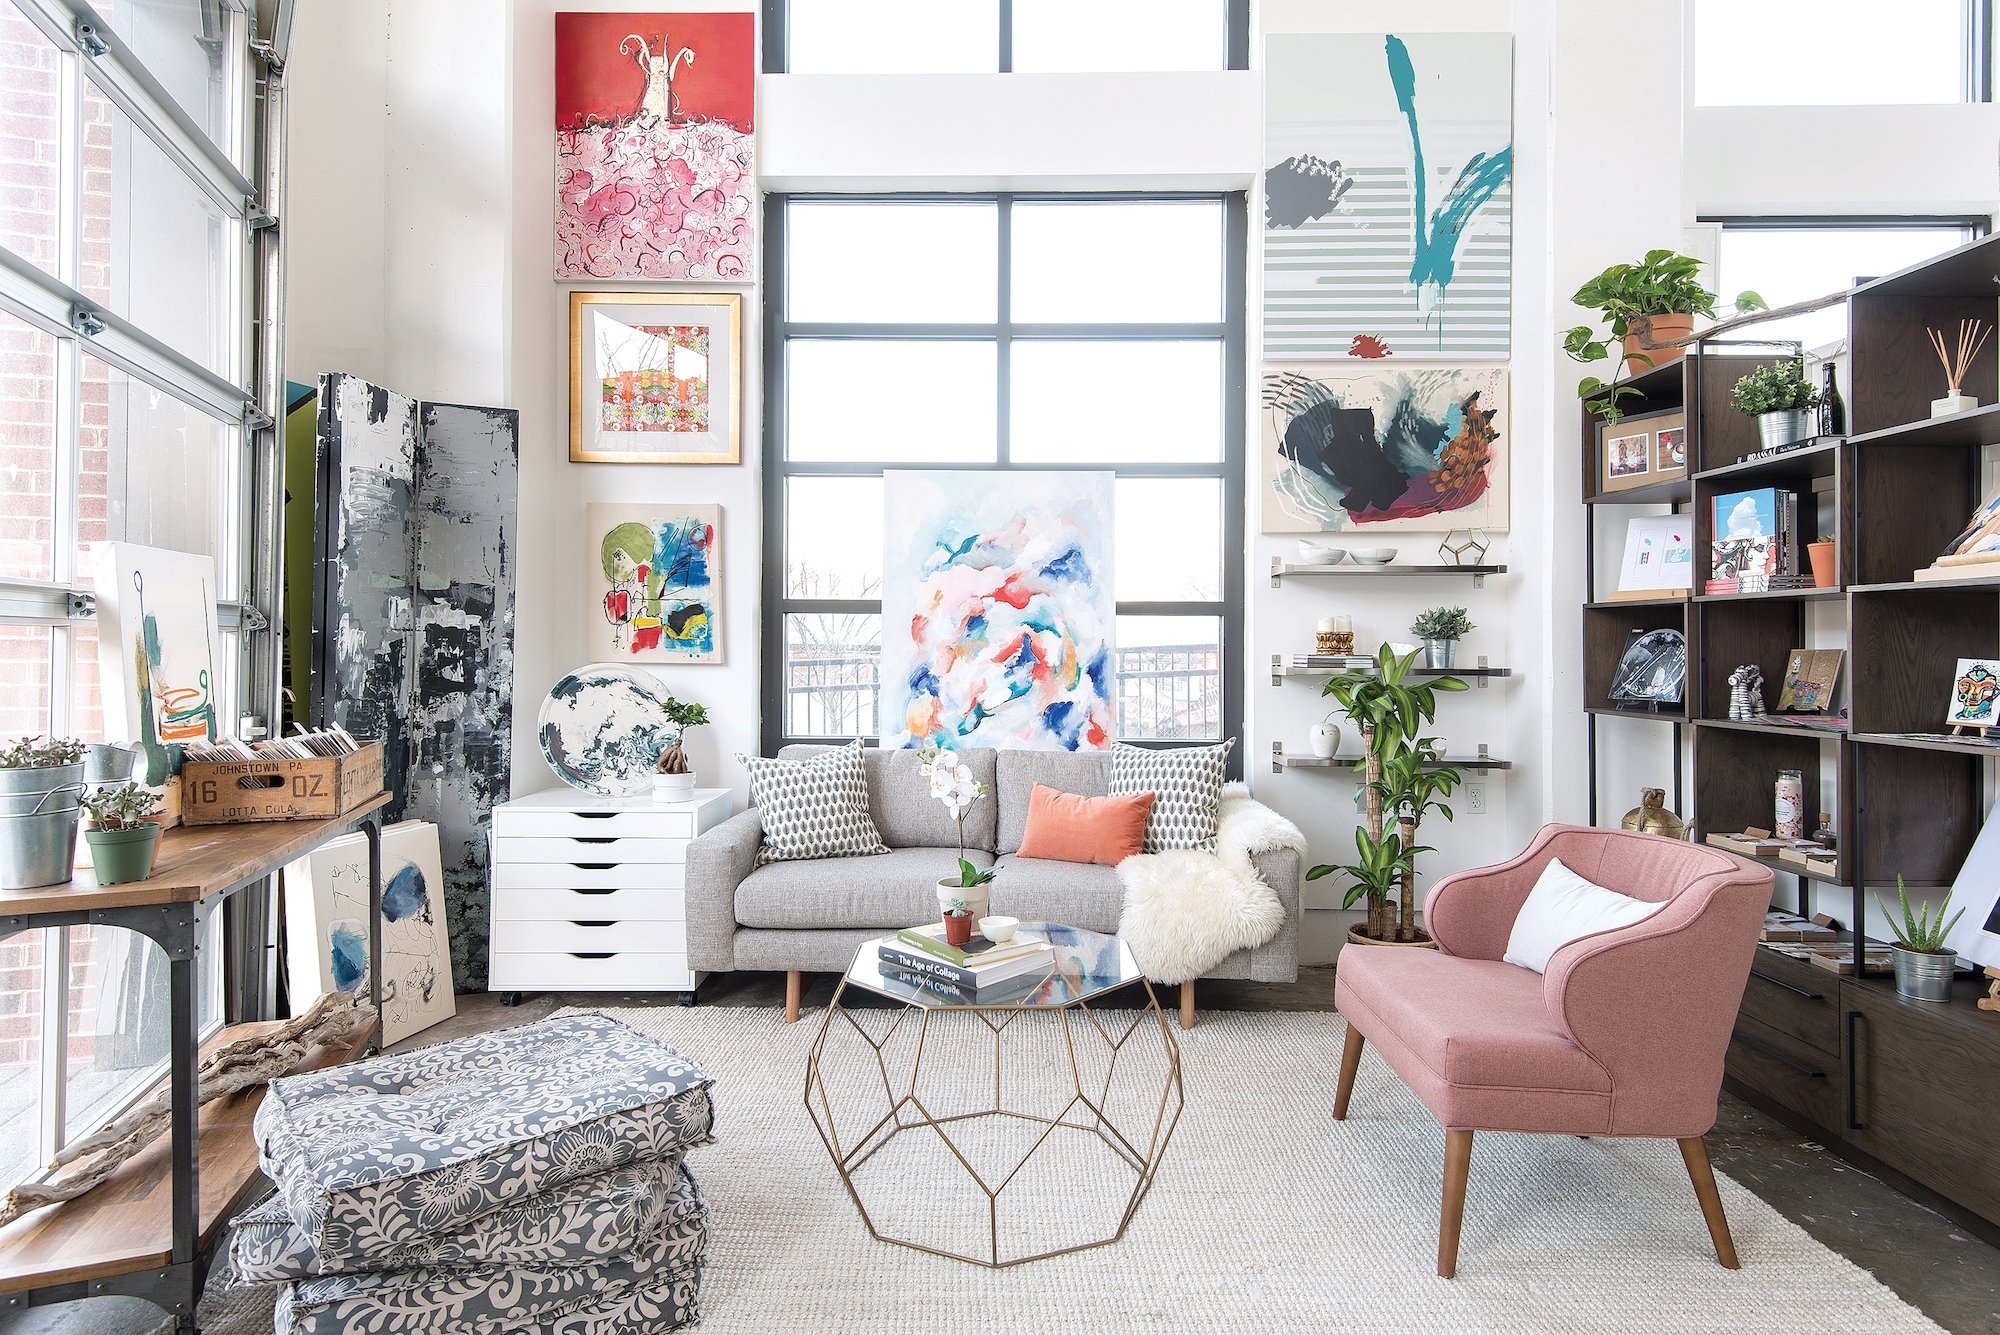 How a Decorator Helped This Artist Turn a Raw Space into a Gorgeous, Sun-Drenched Shop